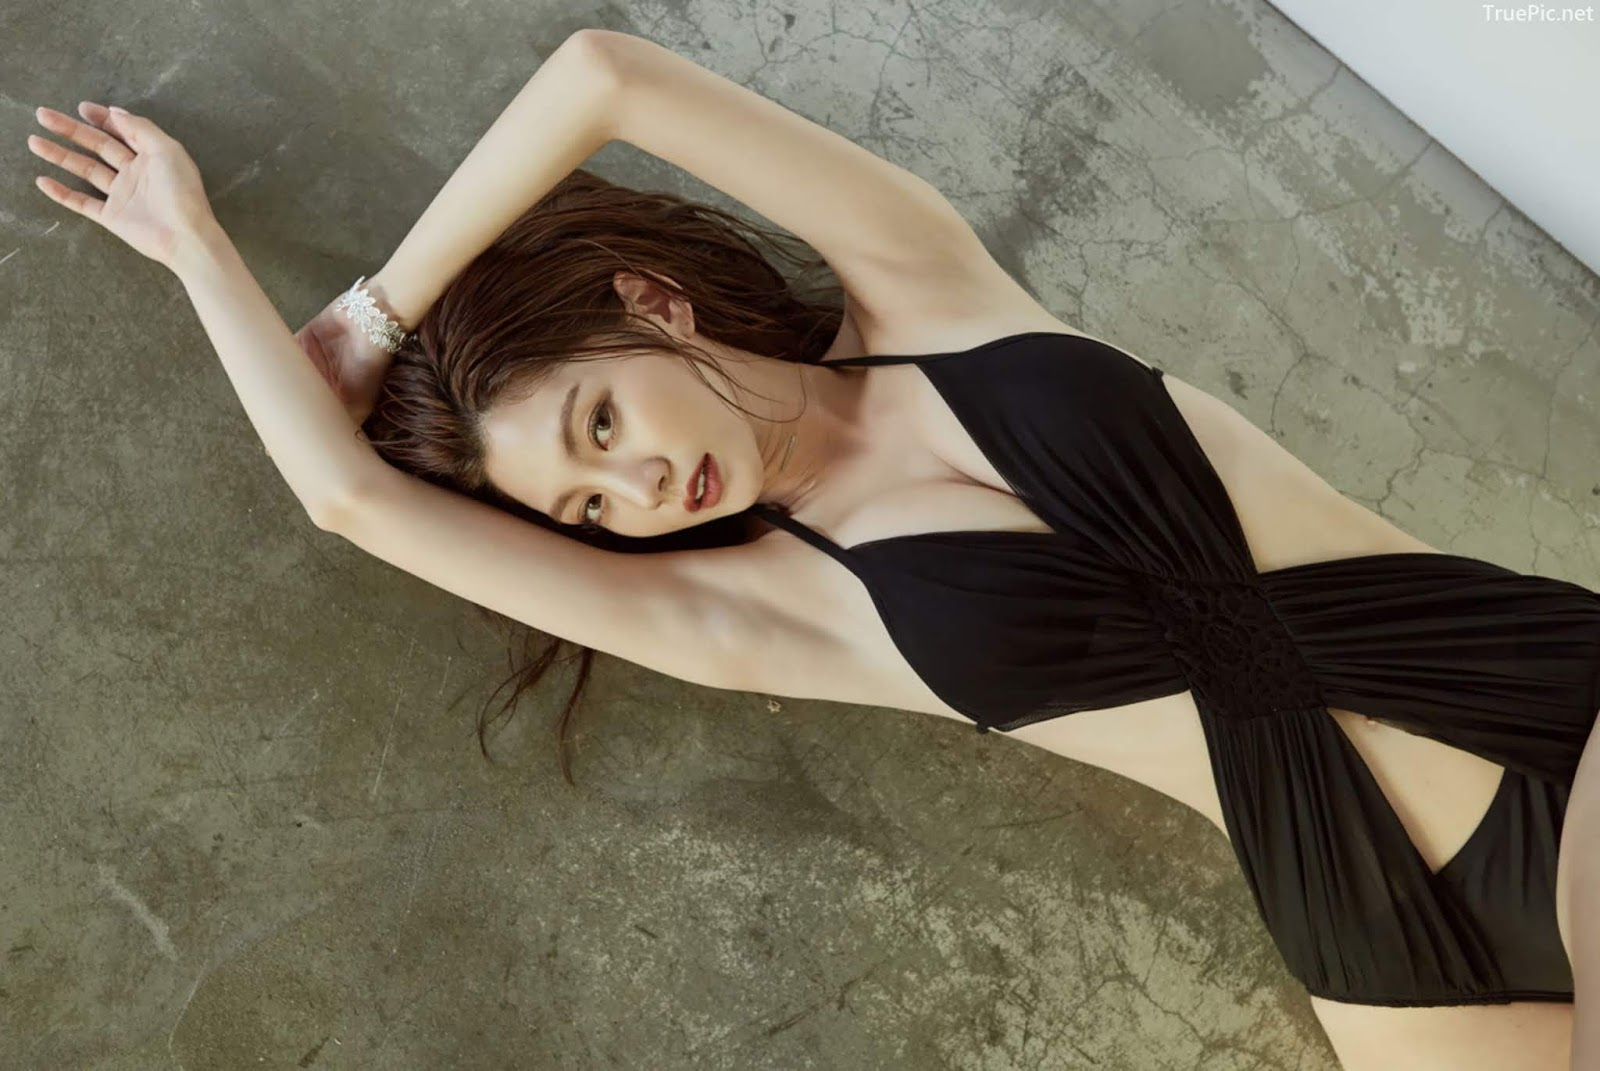 Korean model and fashion - Lee Chae Eun - Monokini for summer vacation - Picture 9